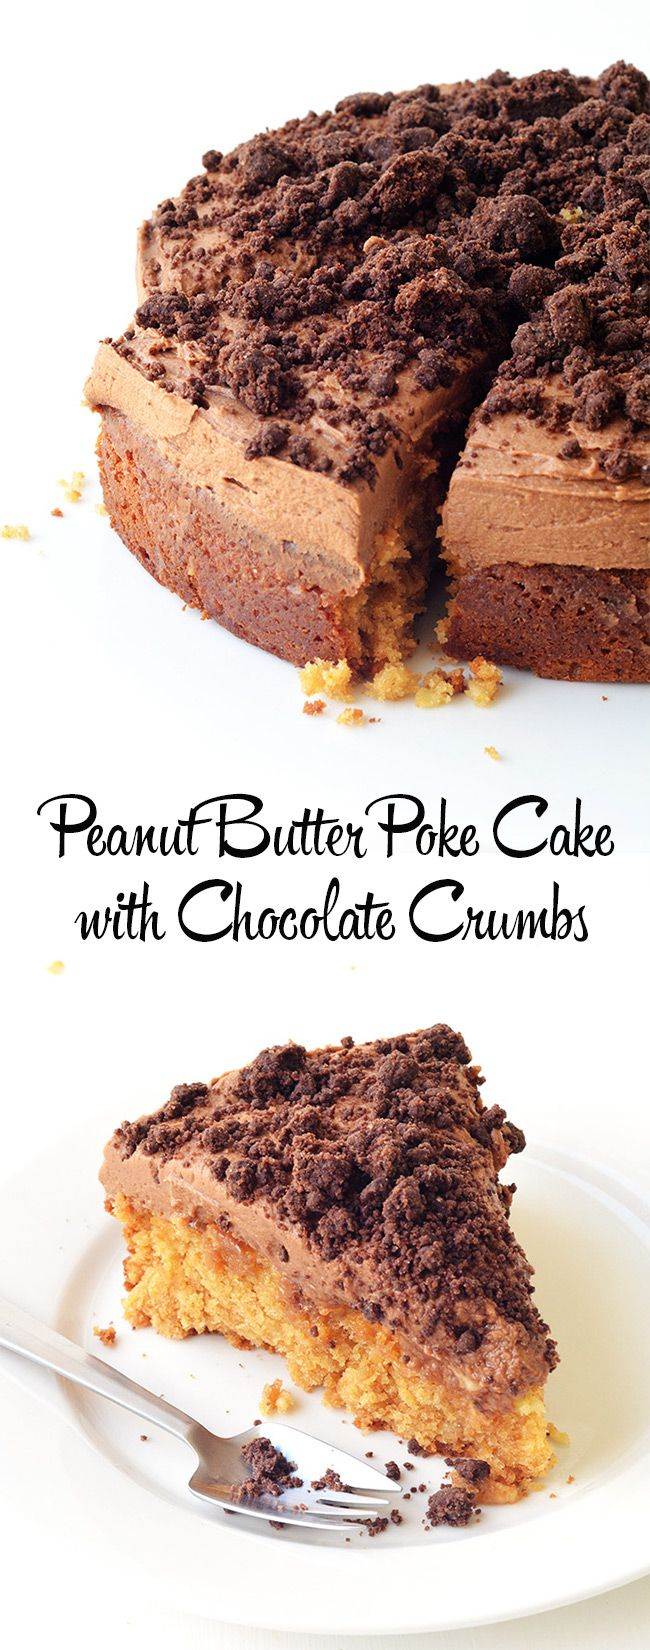 Peanut Butter Poke Cake with homemade chocolate crumbs - the best peanut butter cake I have ever had! Sweetest Menu